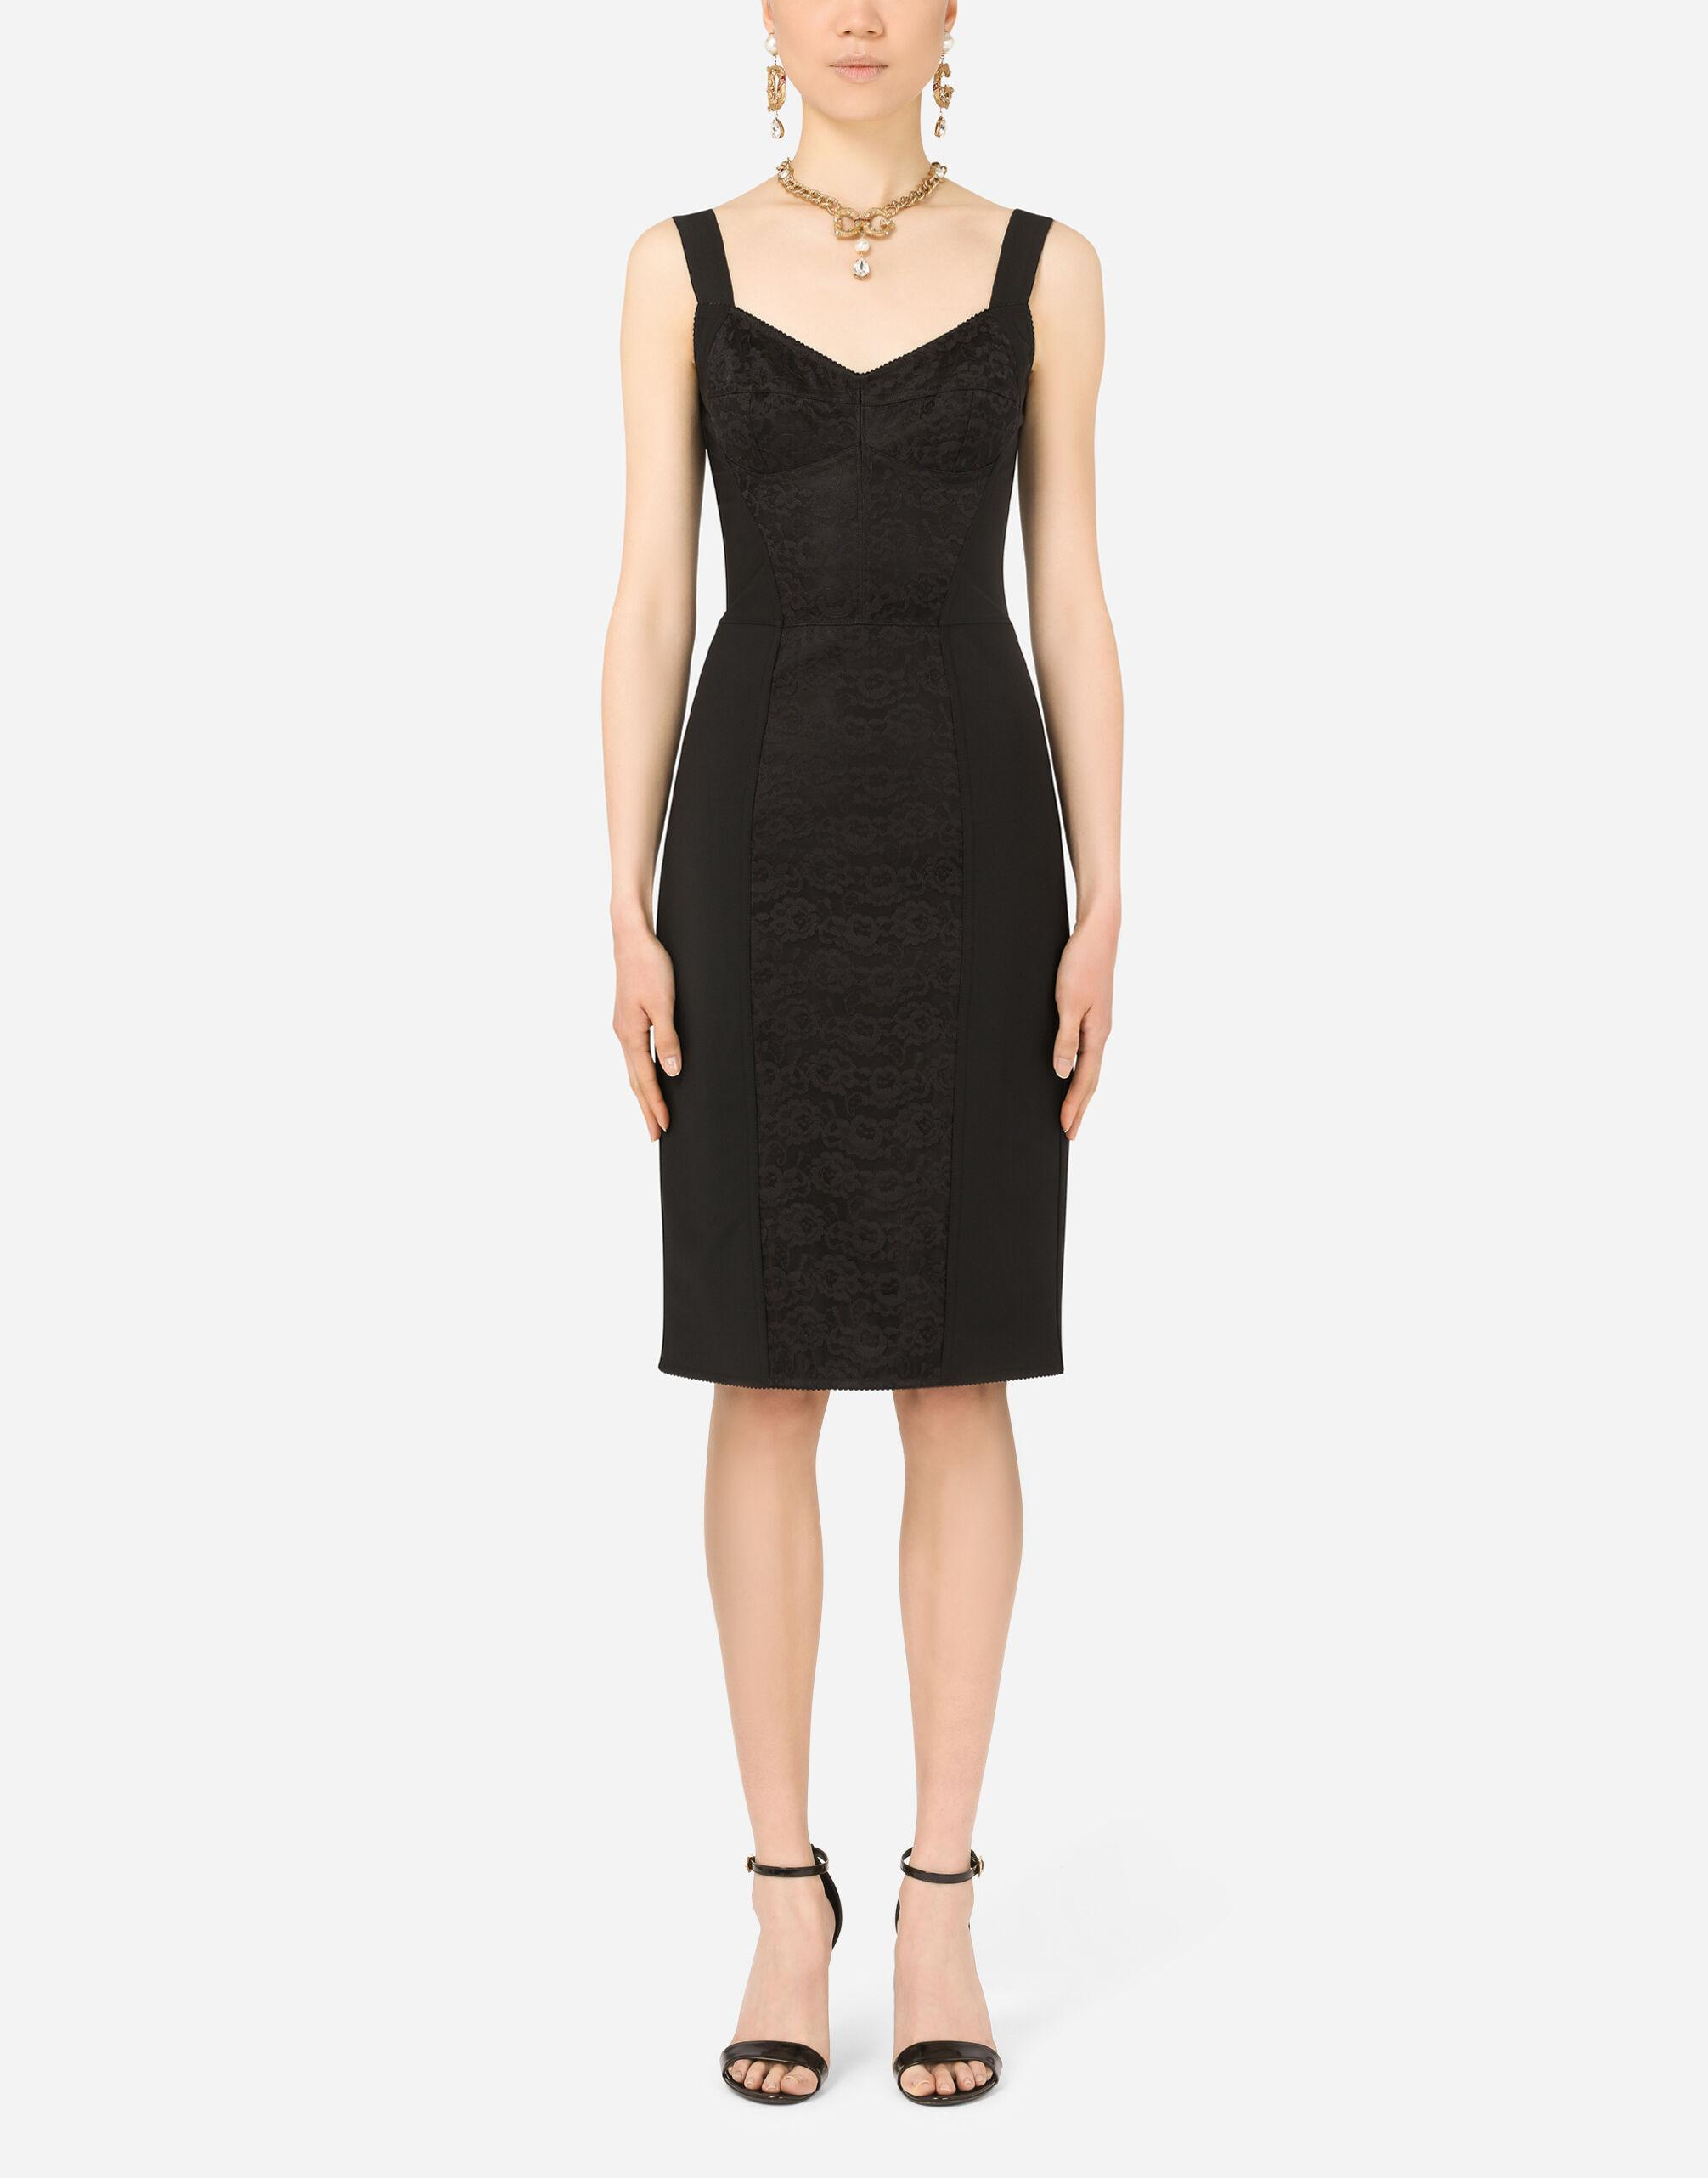 Corset-style midi dress in powernet and lace